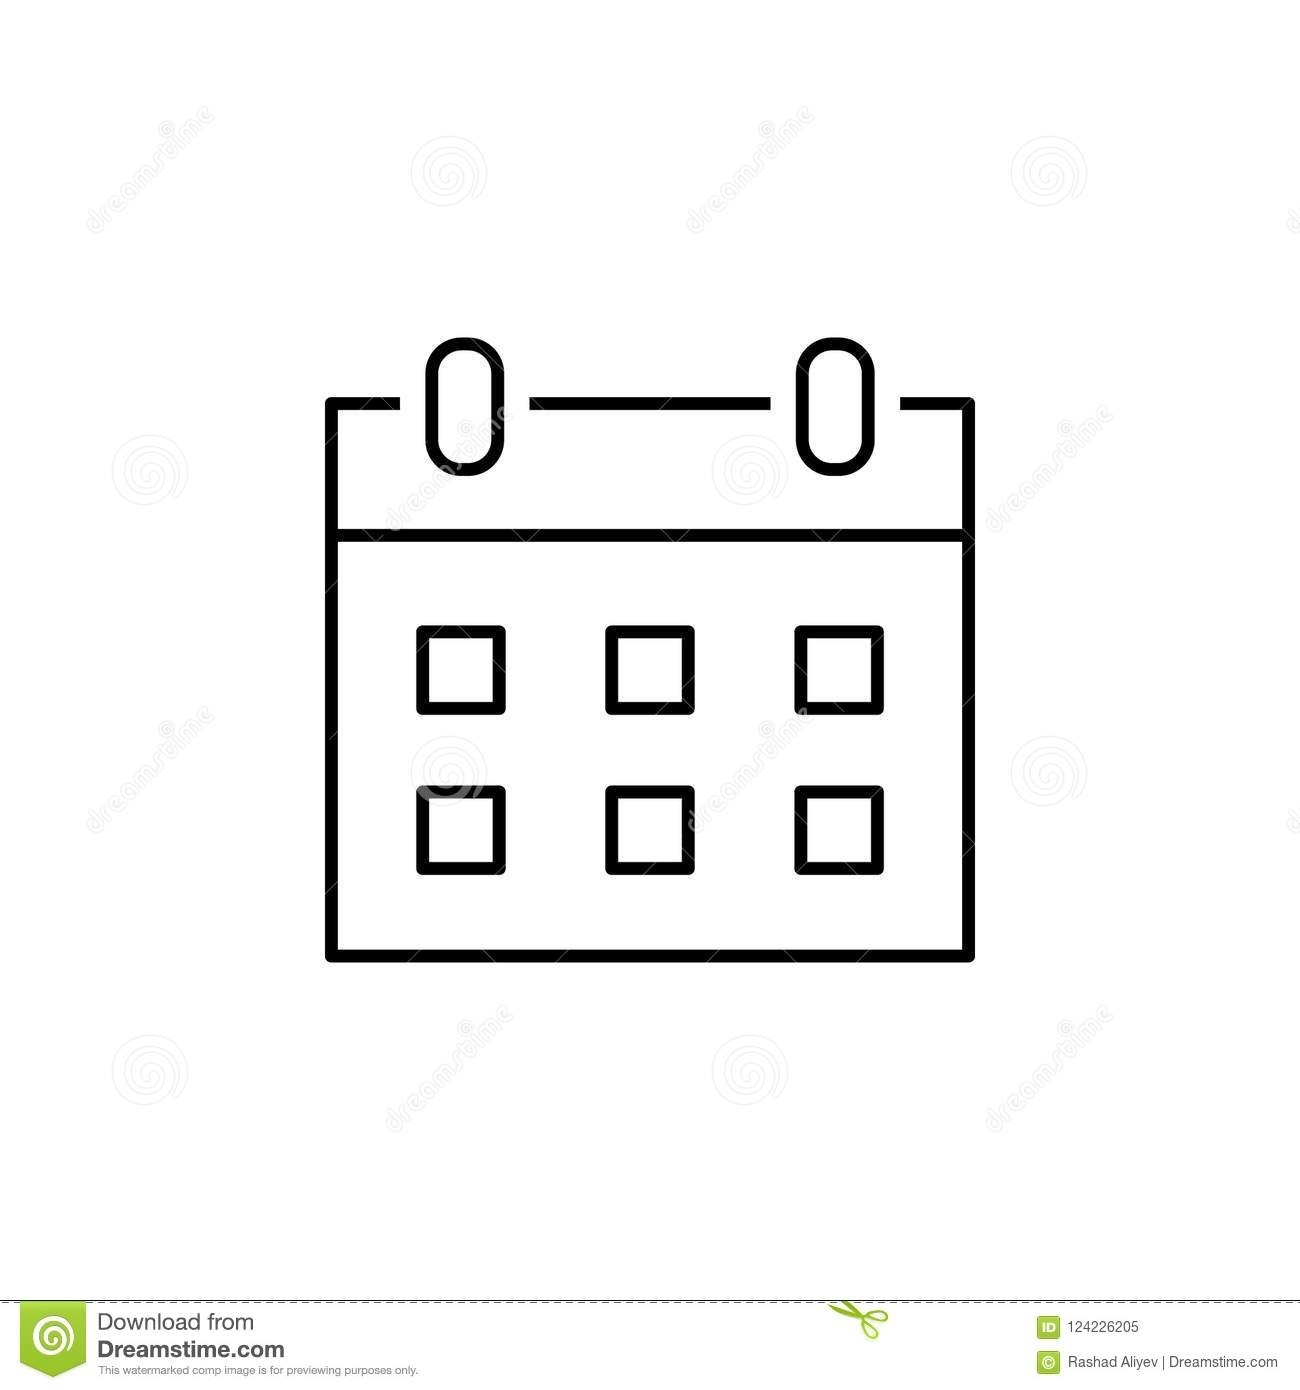 Calendar Icon. Element Of Simple Icon In Material Style For Mobile_Calendar Icon Material Design